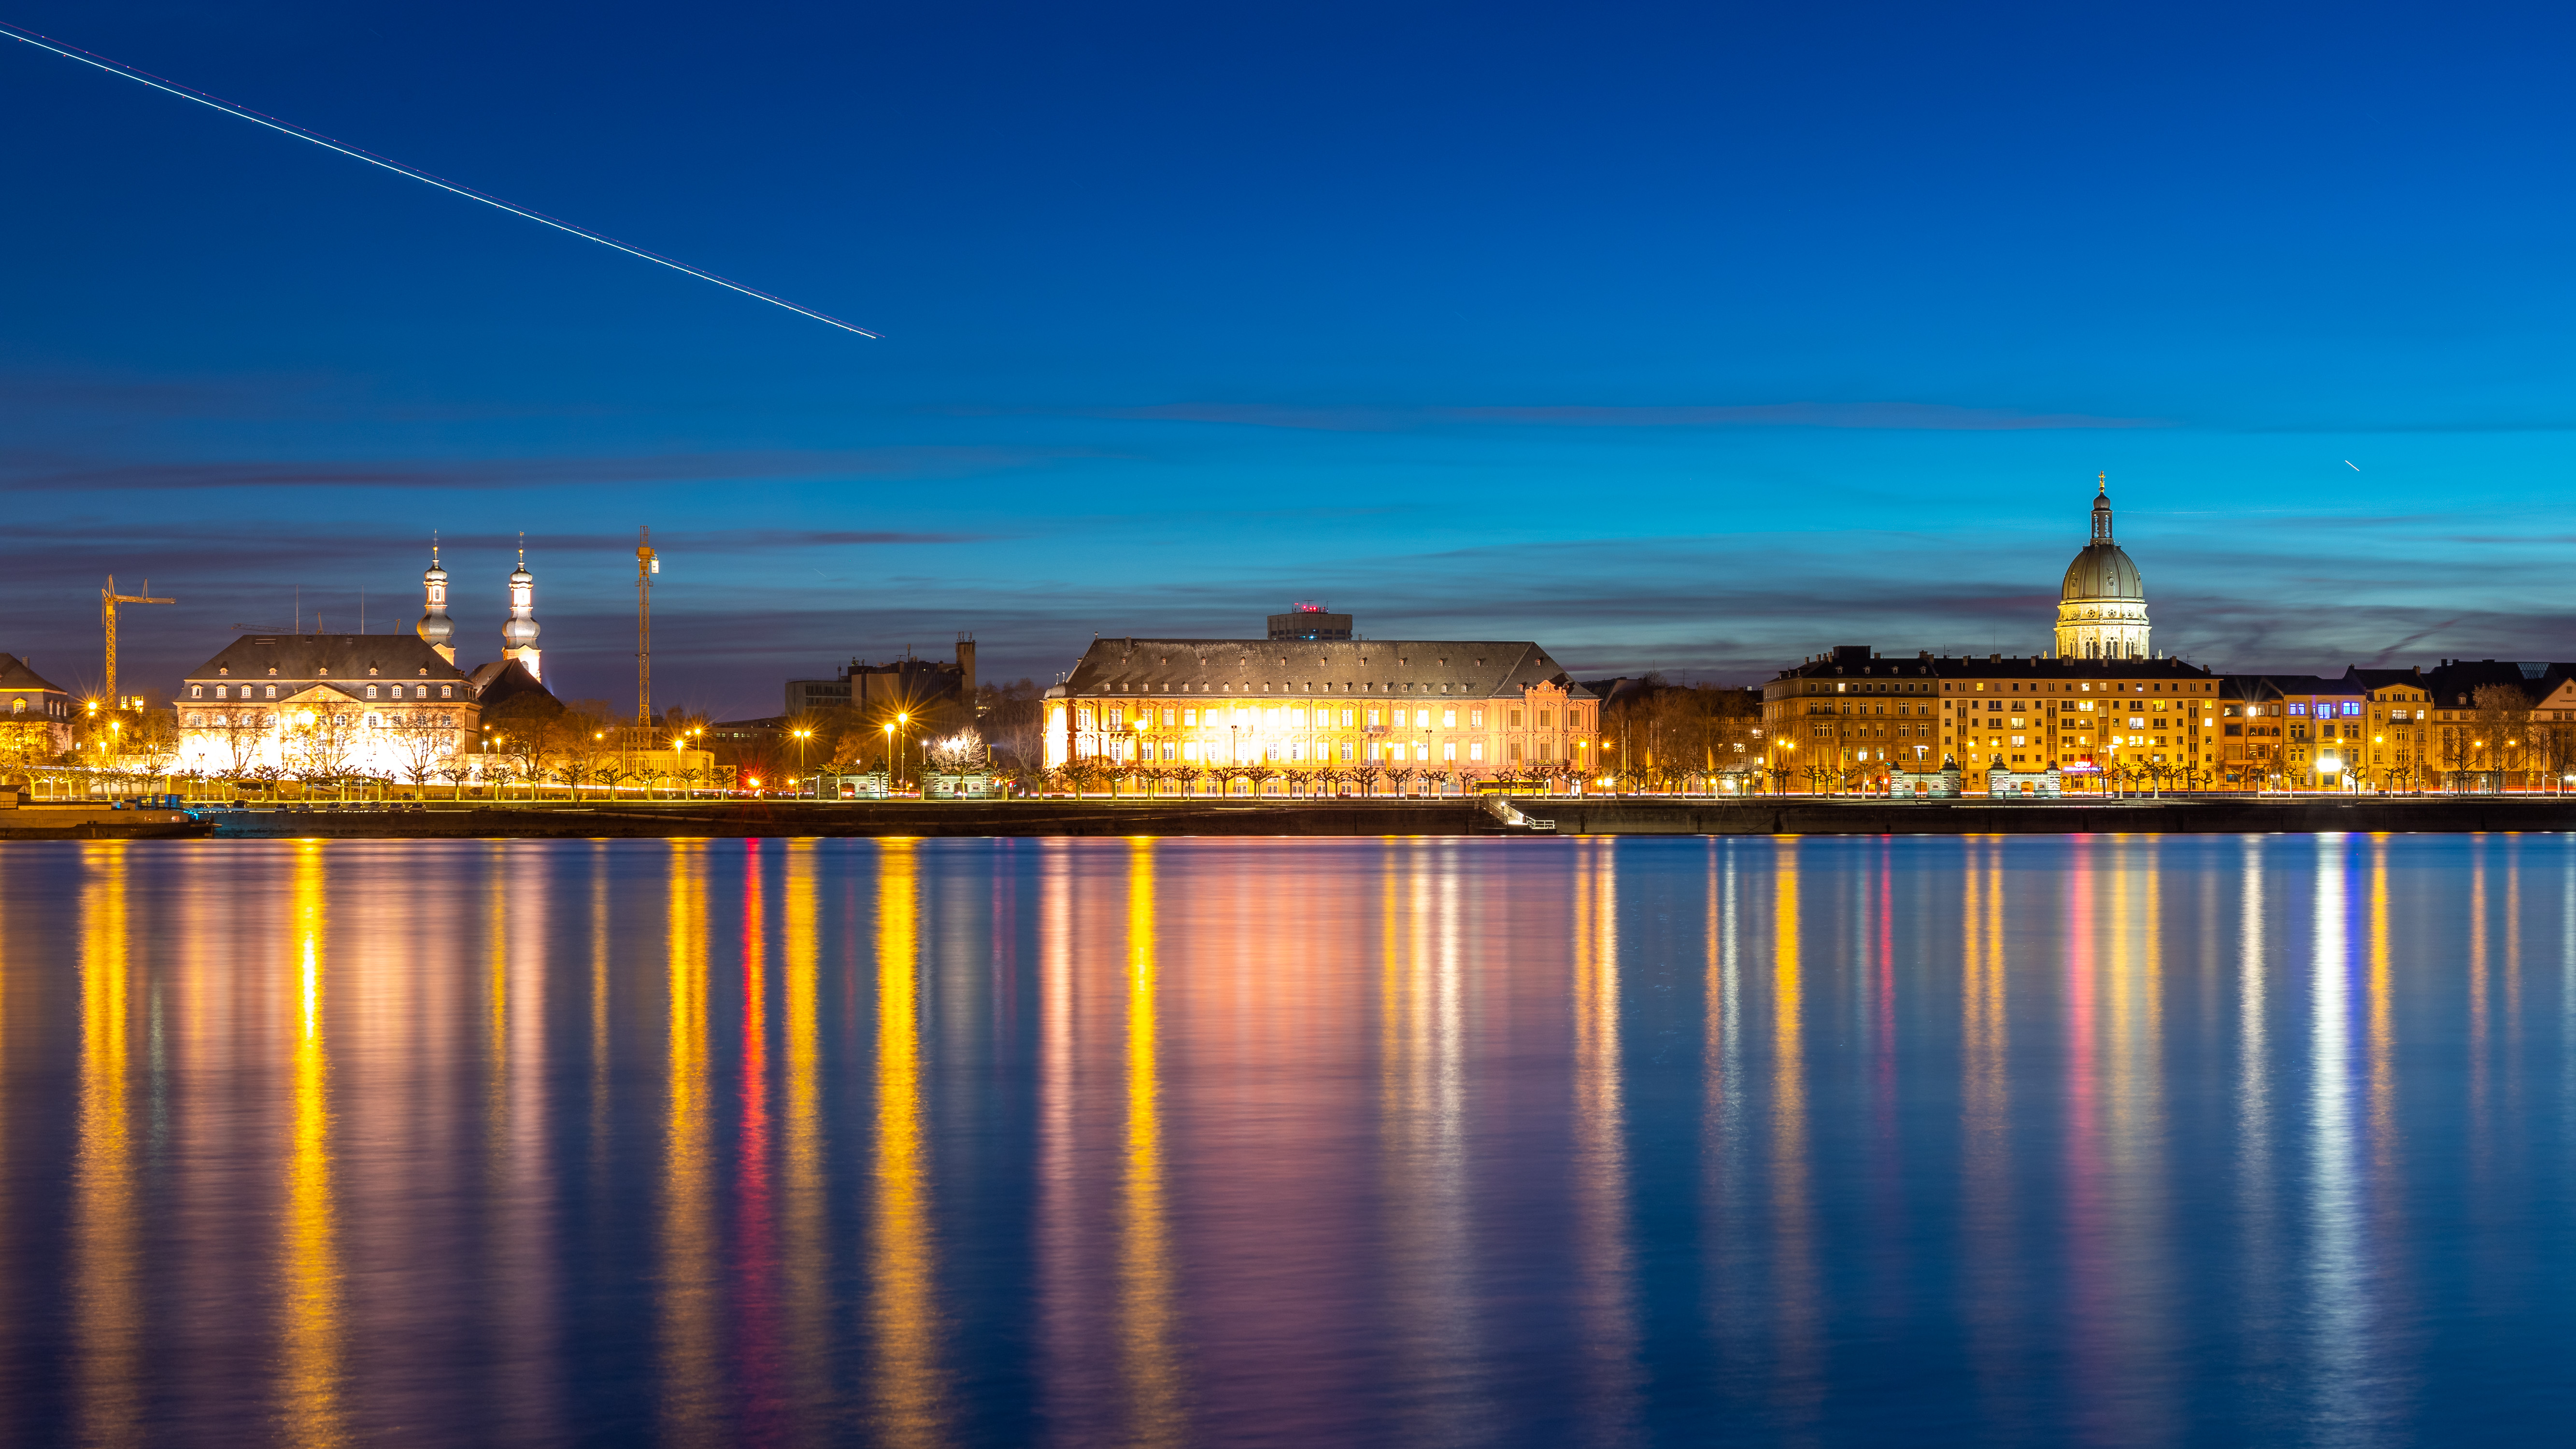 Beautiful sunset image of Mainz. A waterfront composed of buildings and spires is seen beyond a calm body of water in the foreground. The waterfront is lit up in golden tones, which are reflected in the water.